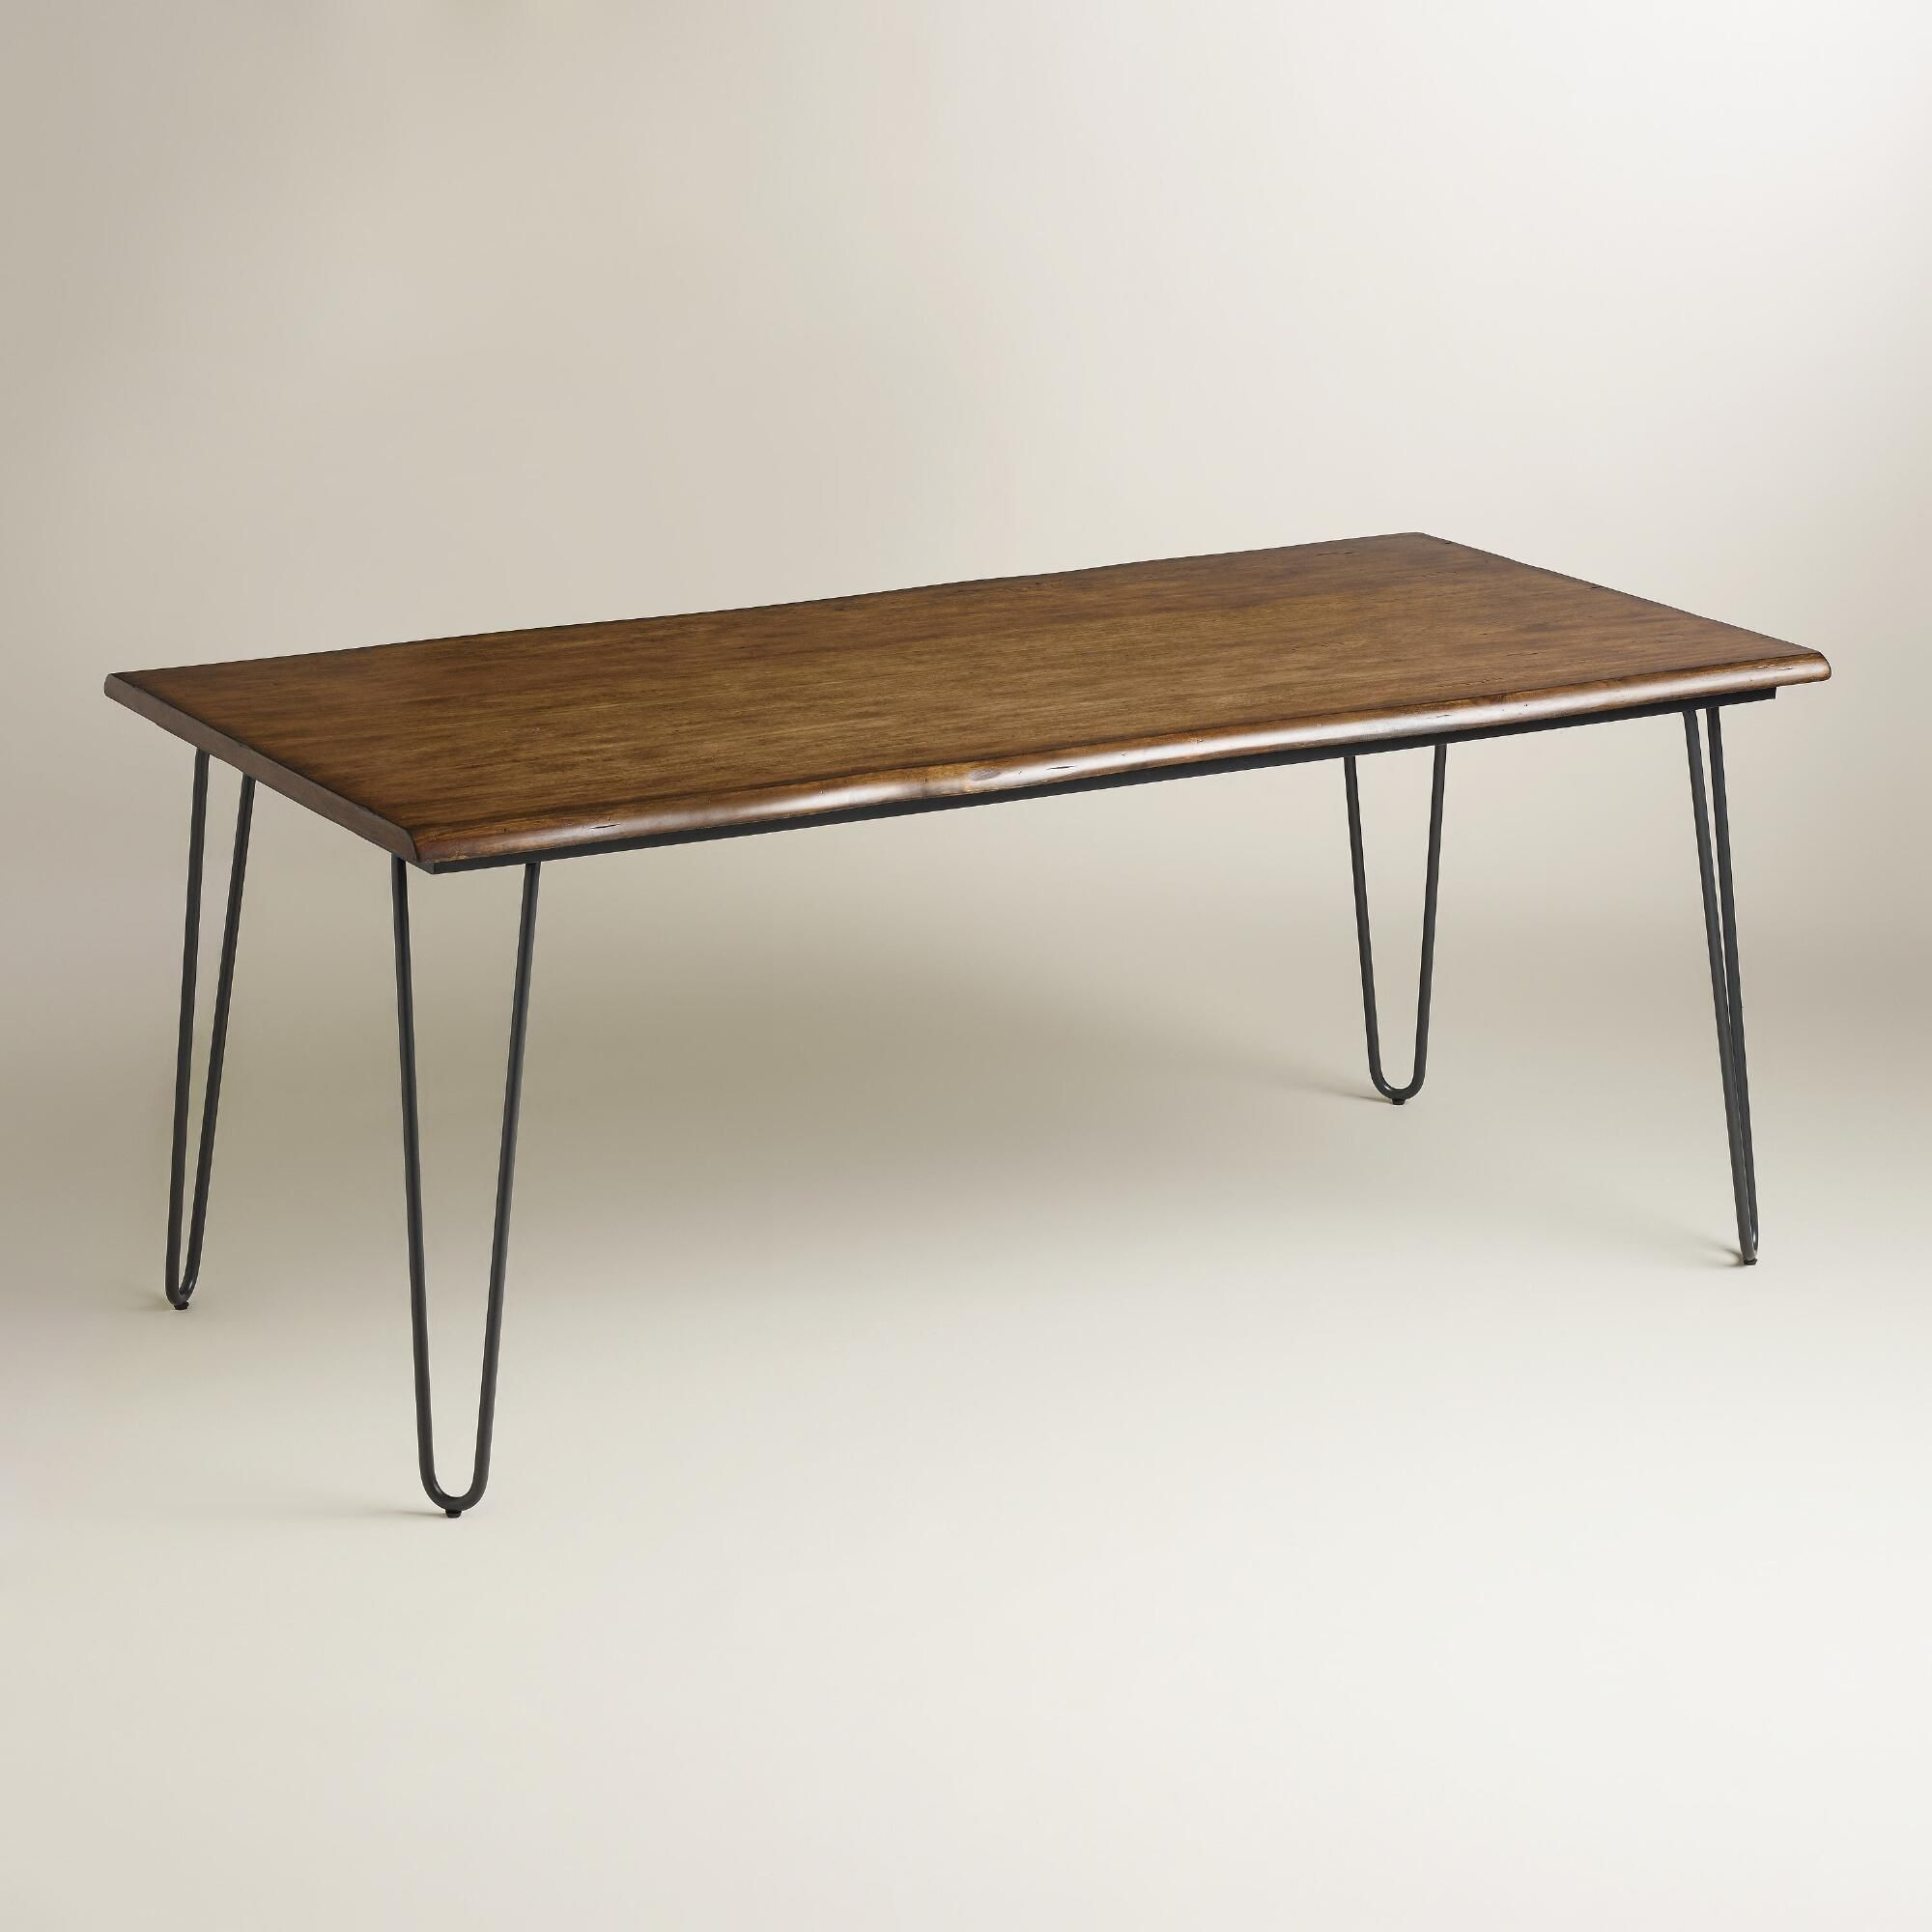 wood flynn hairpin dining table | cleaning, wood grain and woods